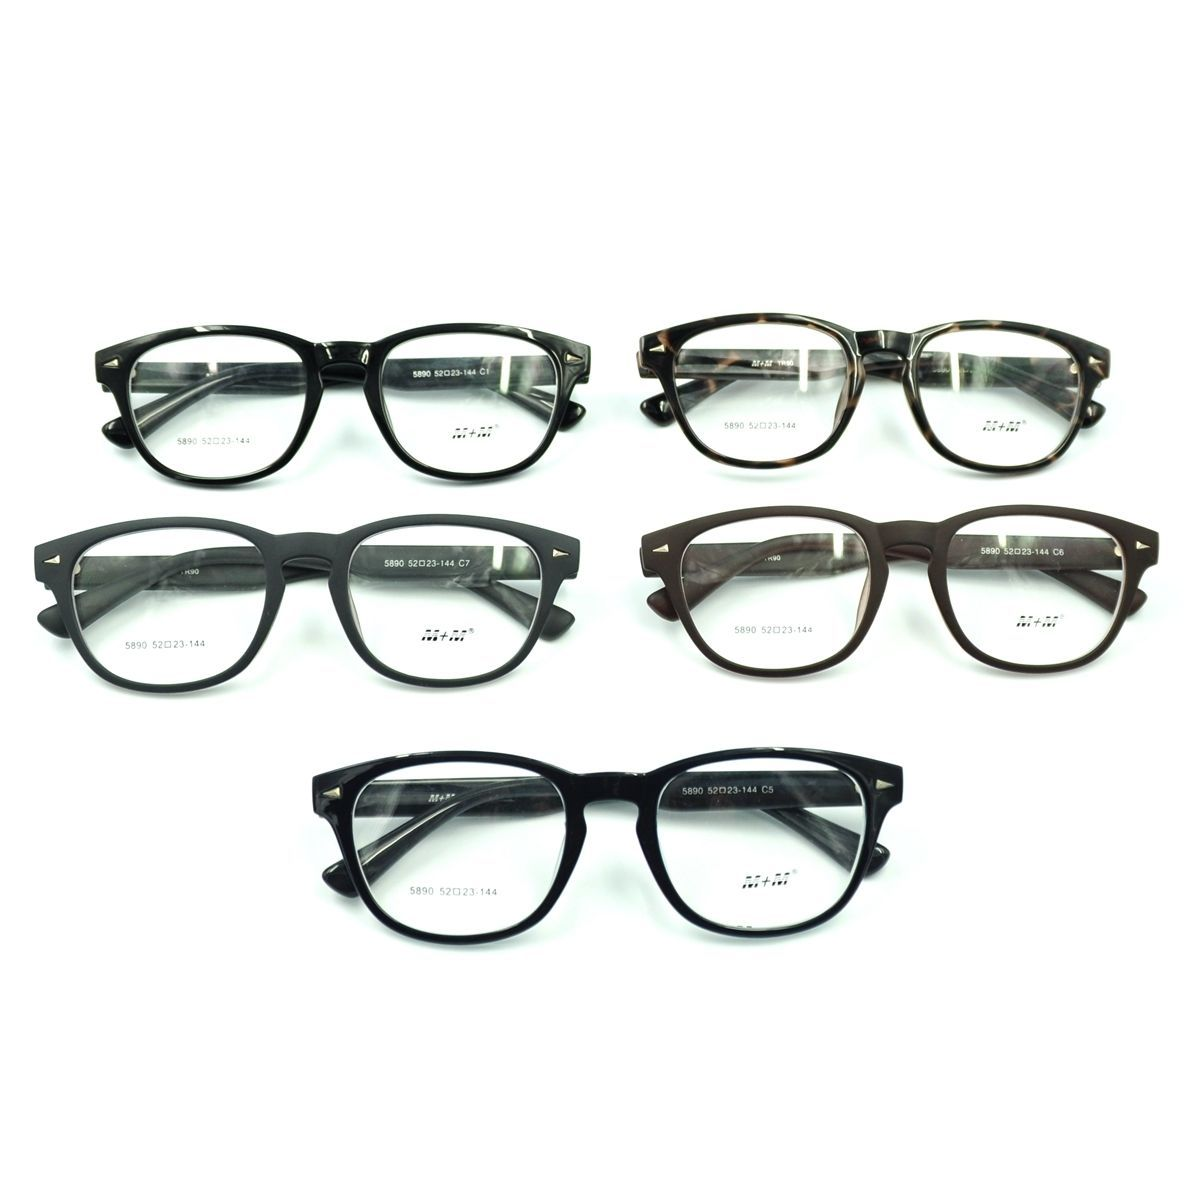 Vintage Horn Rim Mens Acetate Eyeglasses Frame Rx Spectacles Optical Eyewear - $15.19